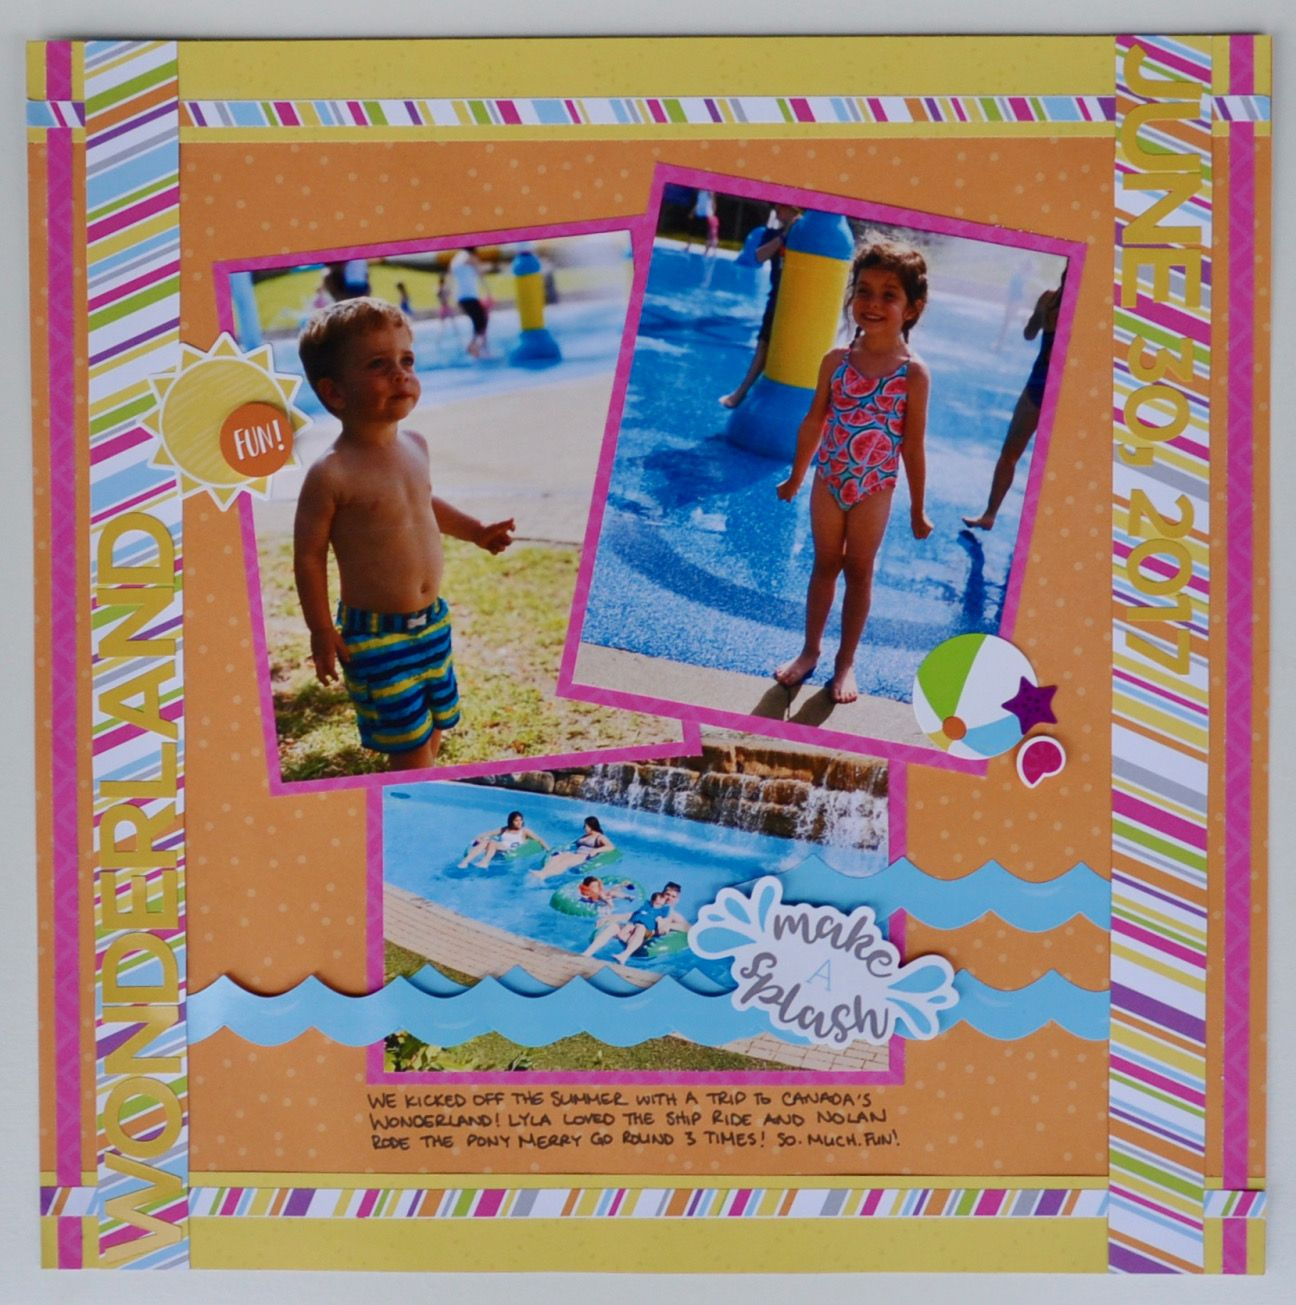 Pin By Lavinia On Holidays Pinterest Scrapbooking Scrap And